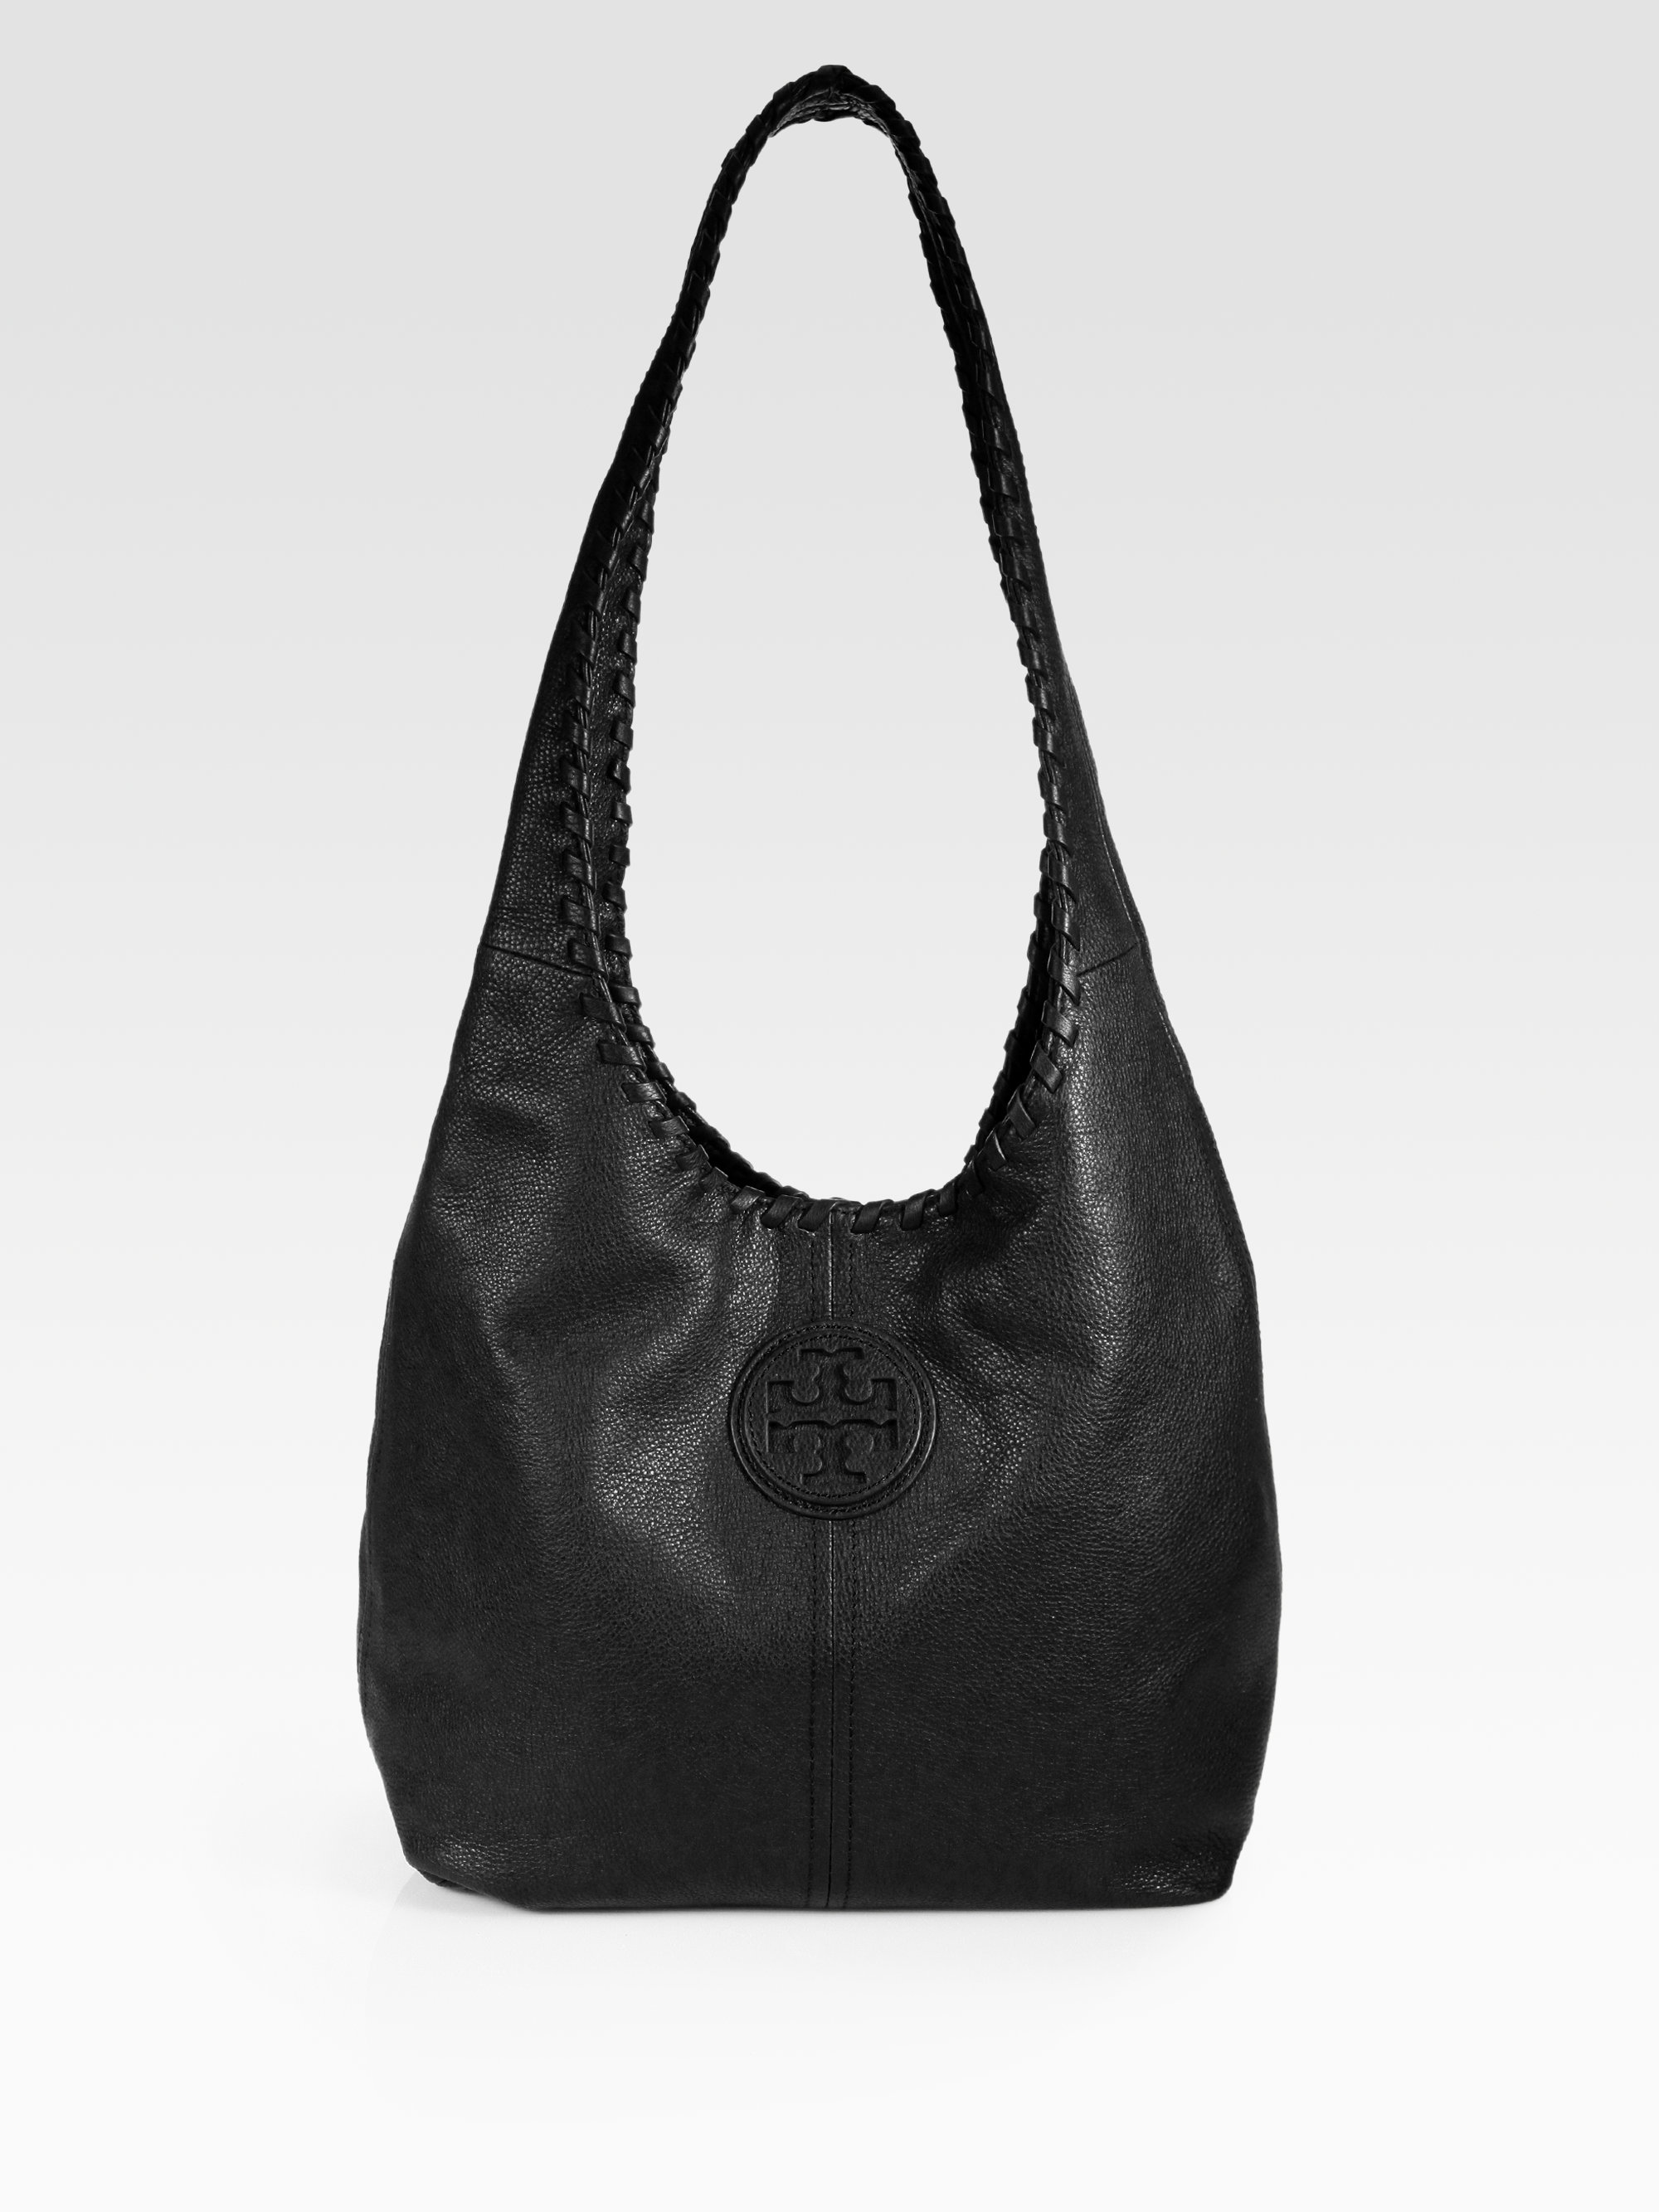 Gallery Previously Sold At Saks Fifth Avenue Women S Tory Burch Marion